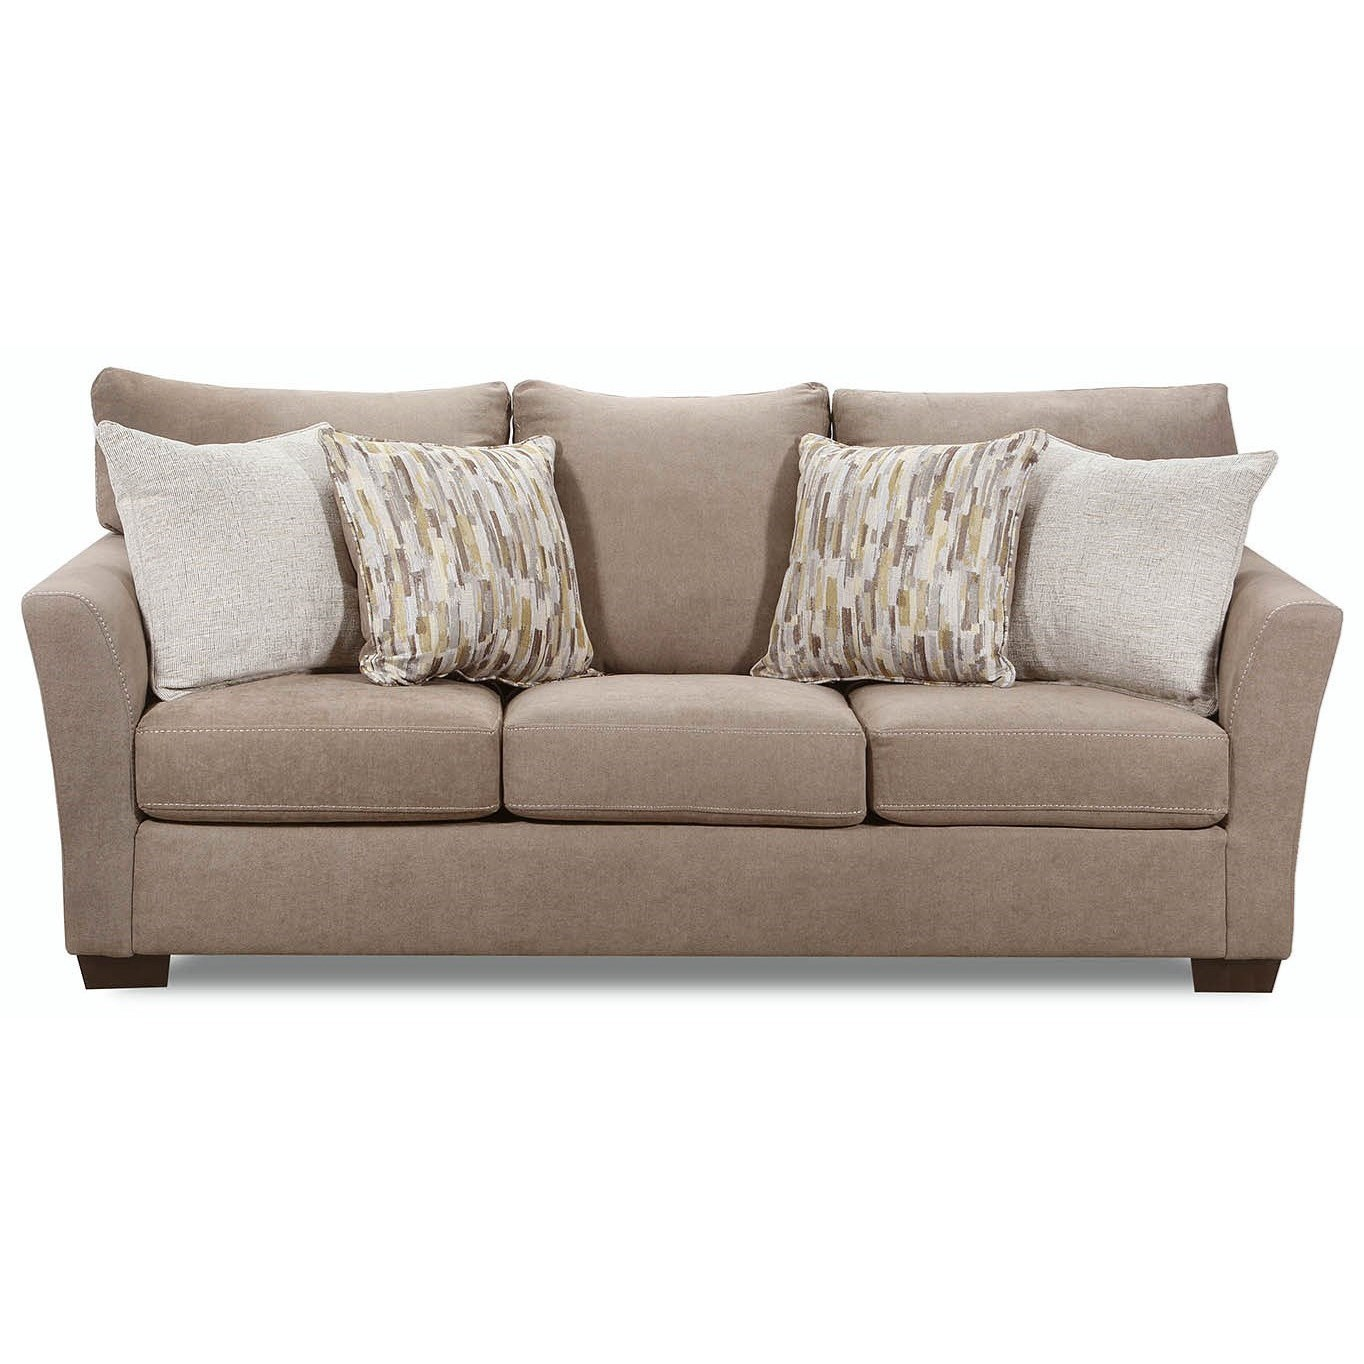 7058 Sofa by Lane at Powell's Furniture and Mattress